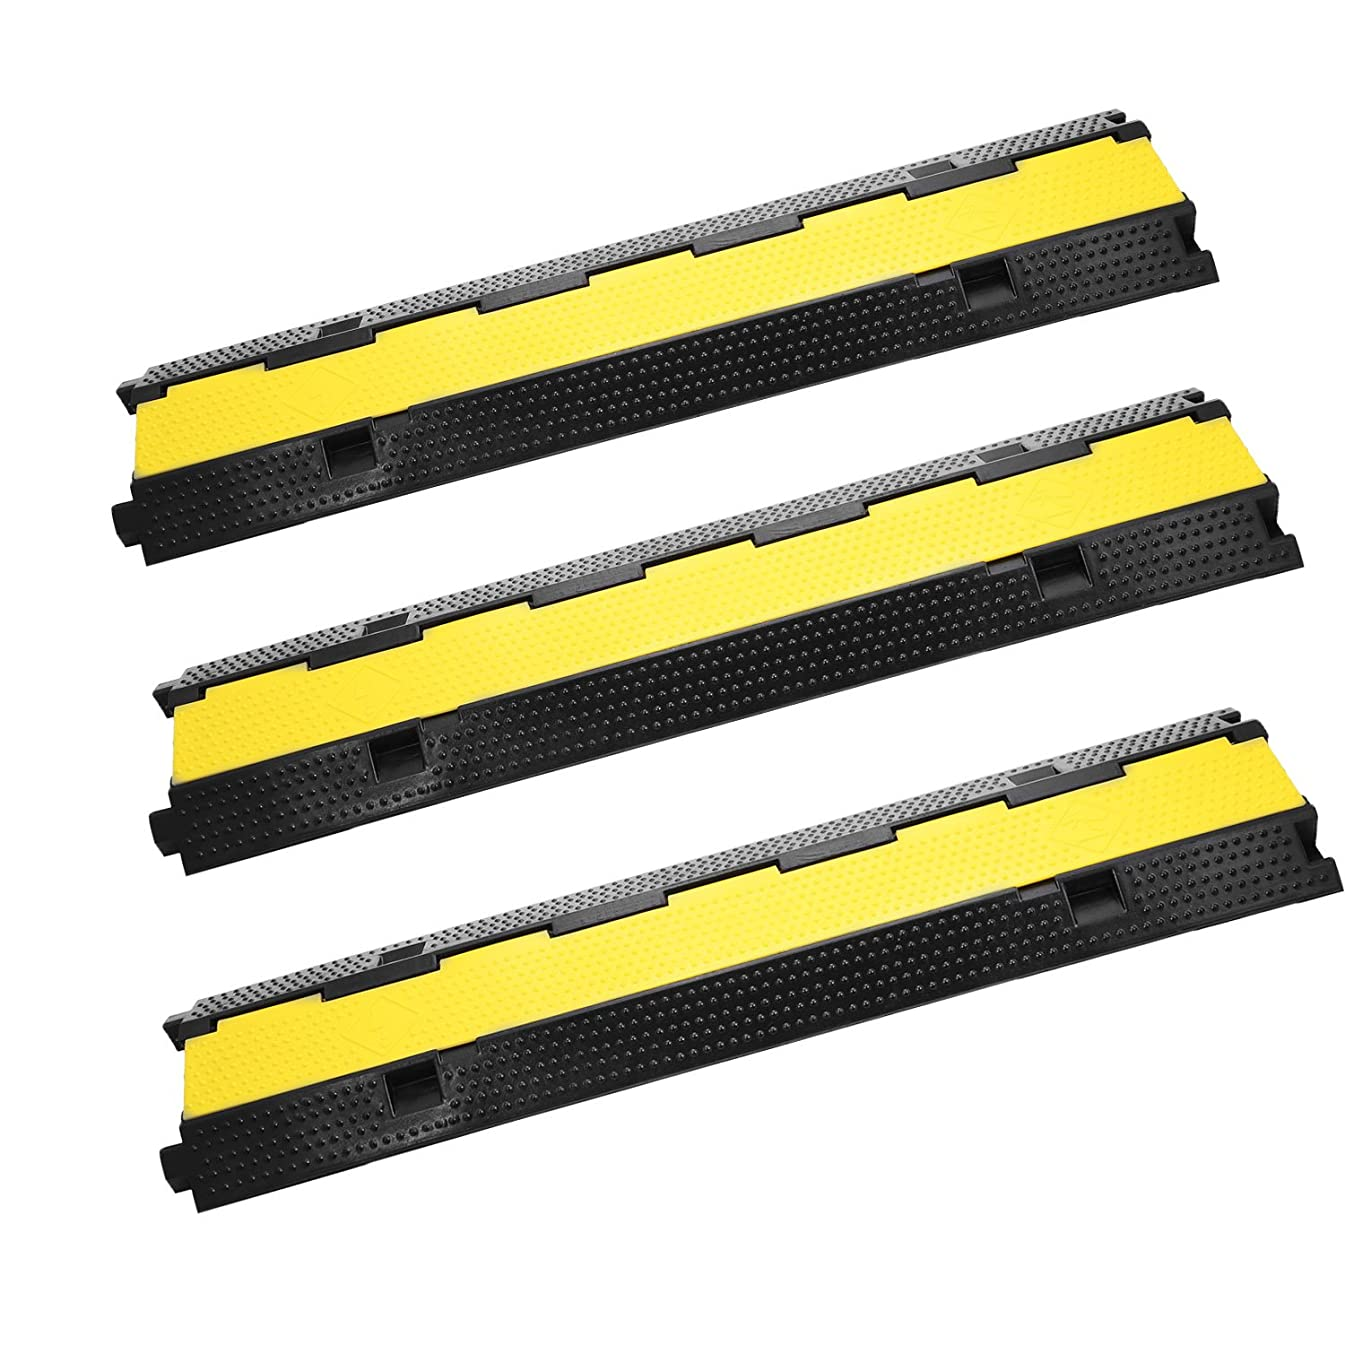 Happybuy Rubber Cable Protector Cover Ramp Speed Bumps (2-Channel, 3Pack0)